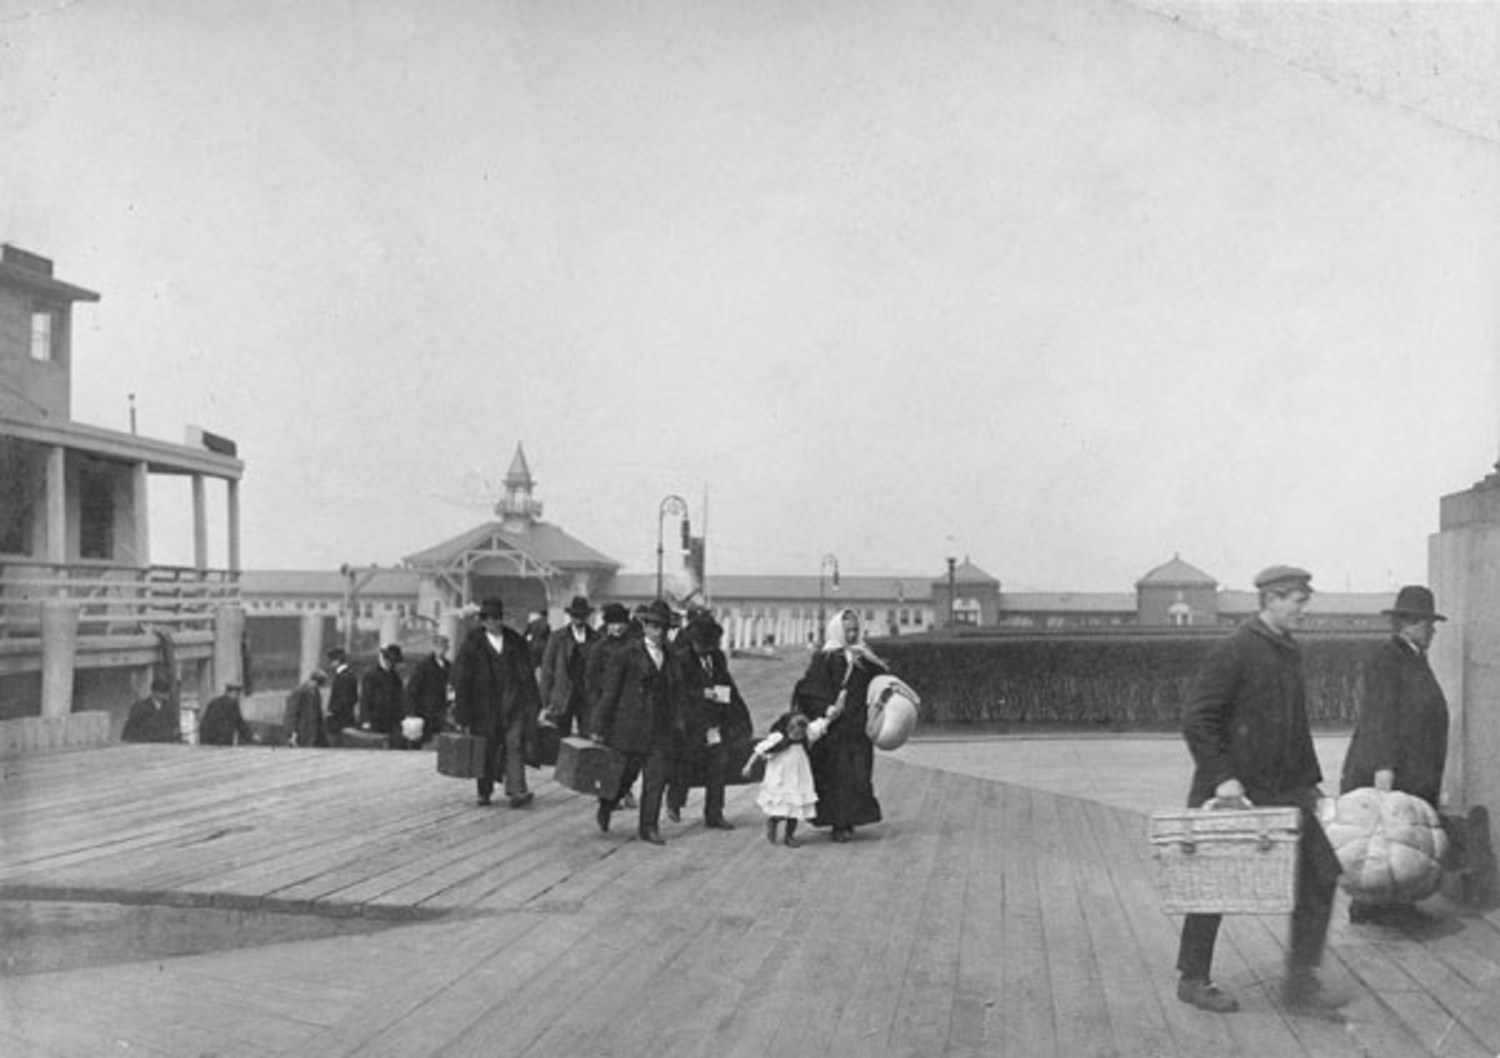 Immigrants Landing on Ellis Island (circa 1900)